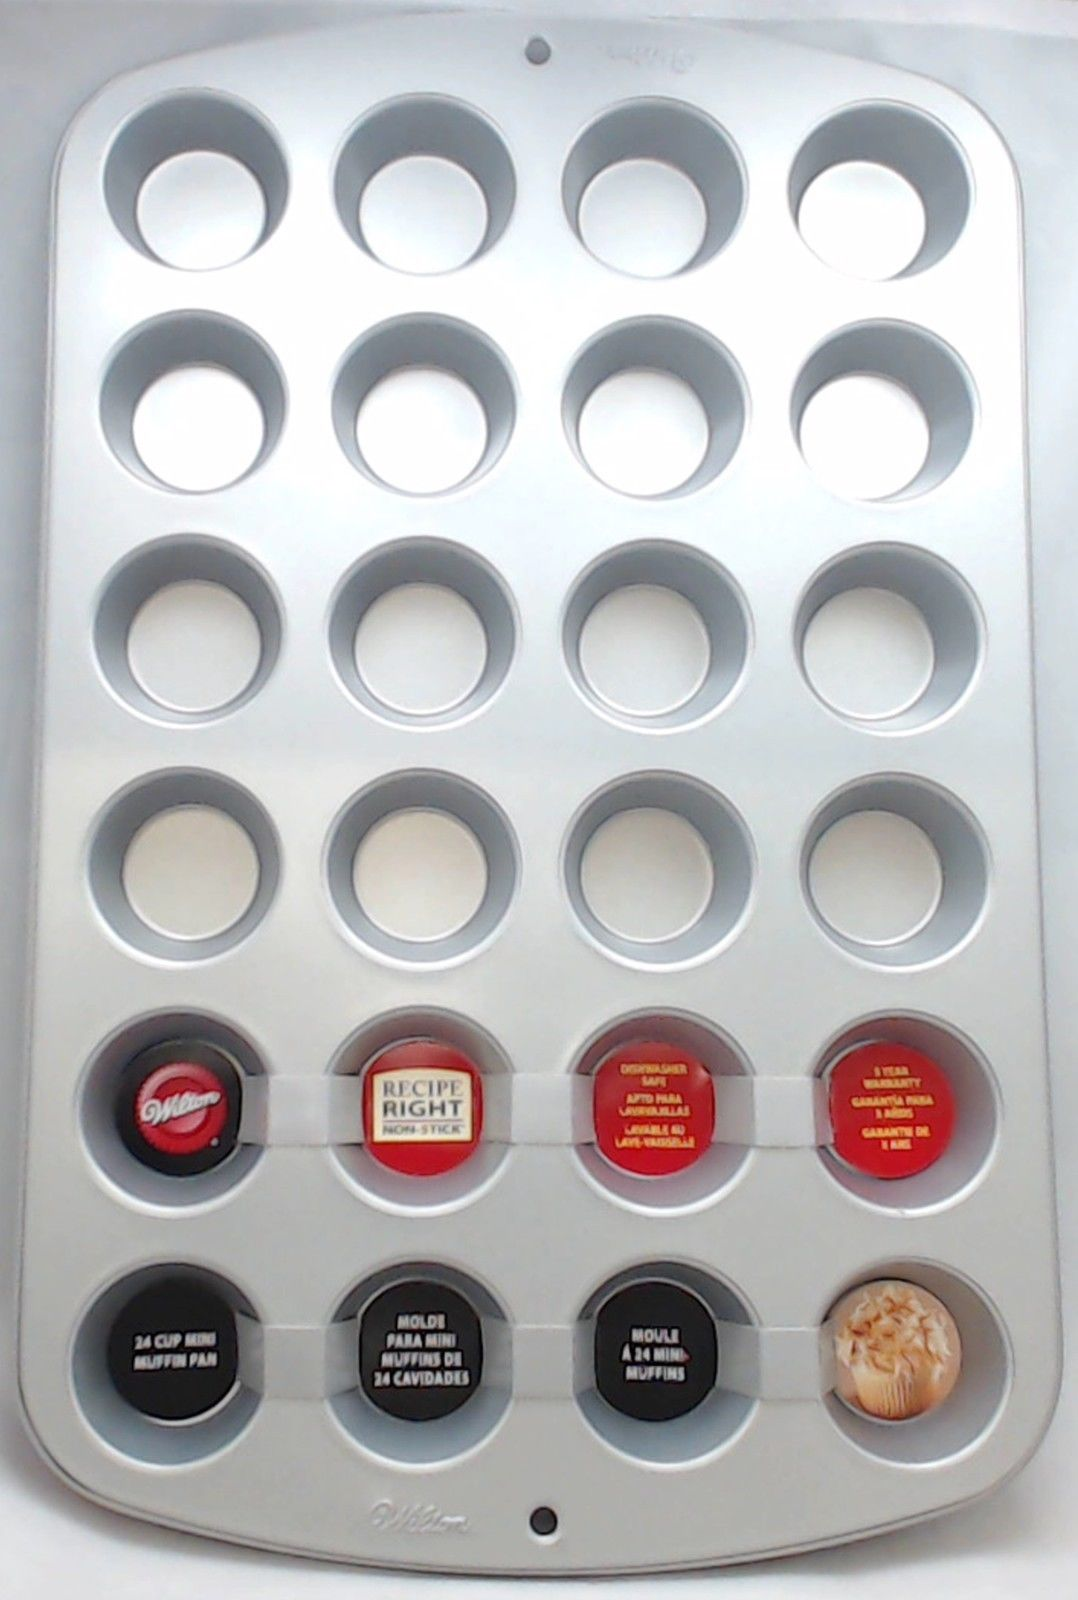 2105-914, Wilton Recipe Right Non-Stick 24 Cup Mini Muffin Pan by SRT Appliance Parts